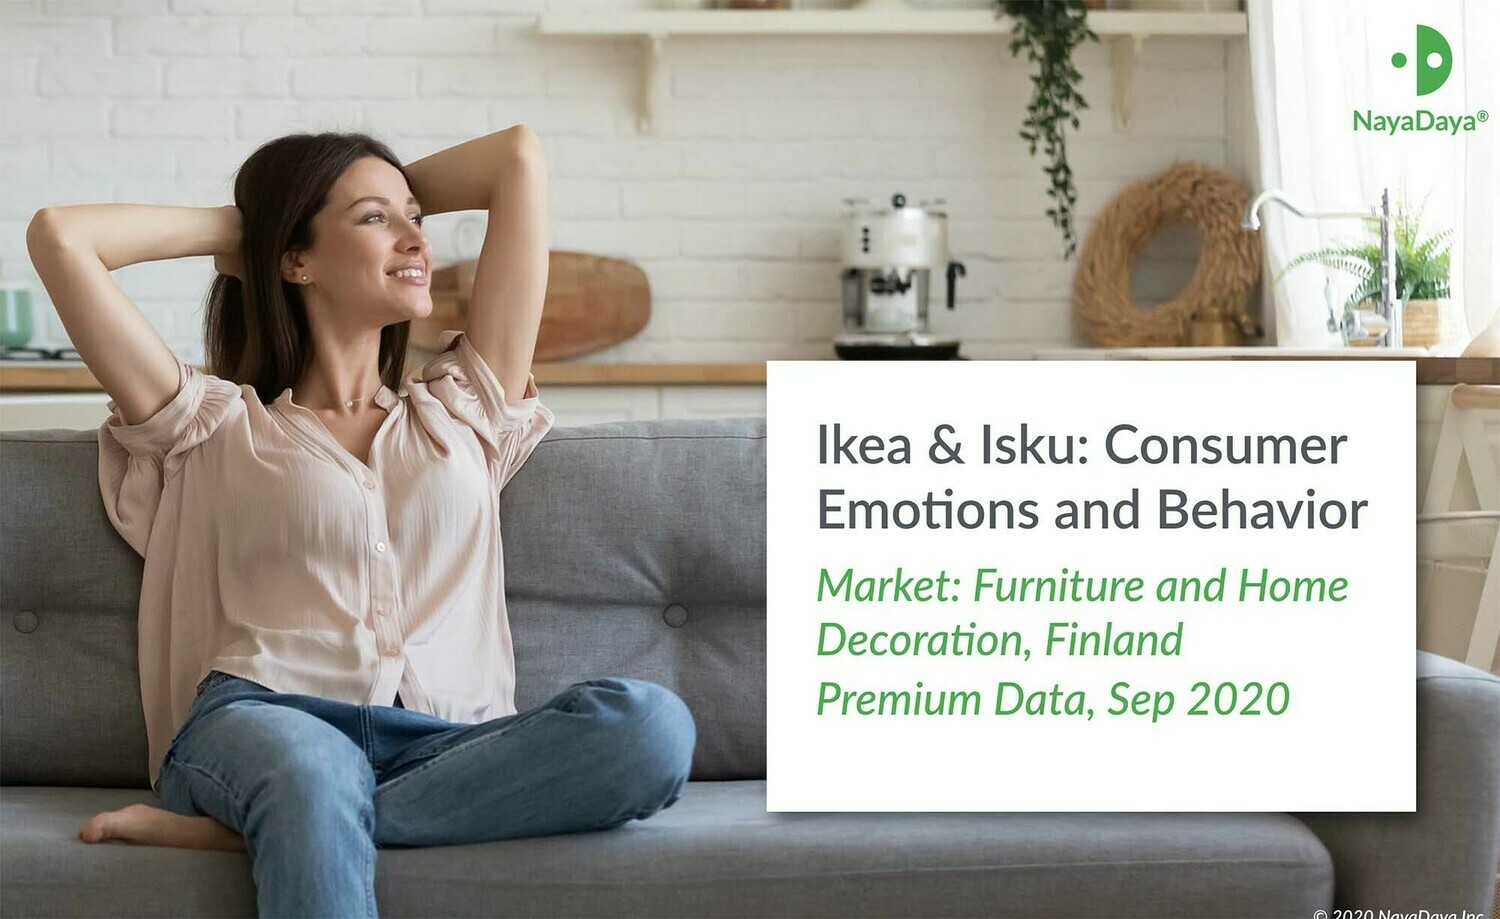 Ikea and Isku: Consumer Emotions and Behavior – Premium Data and Report